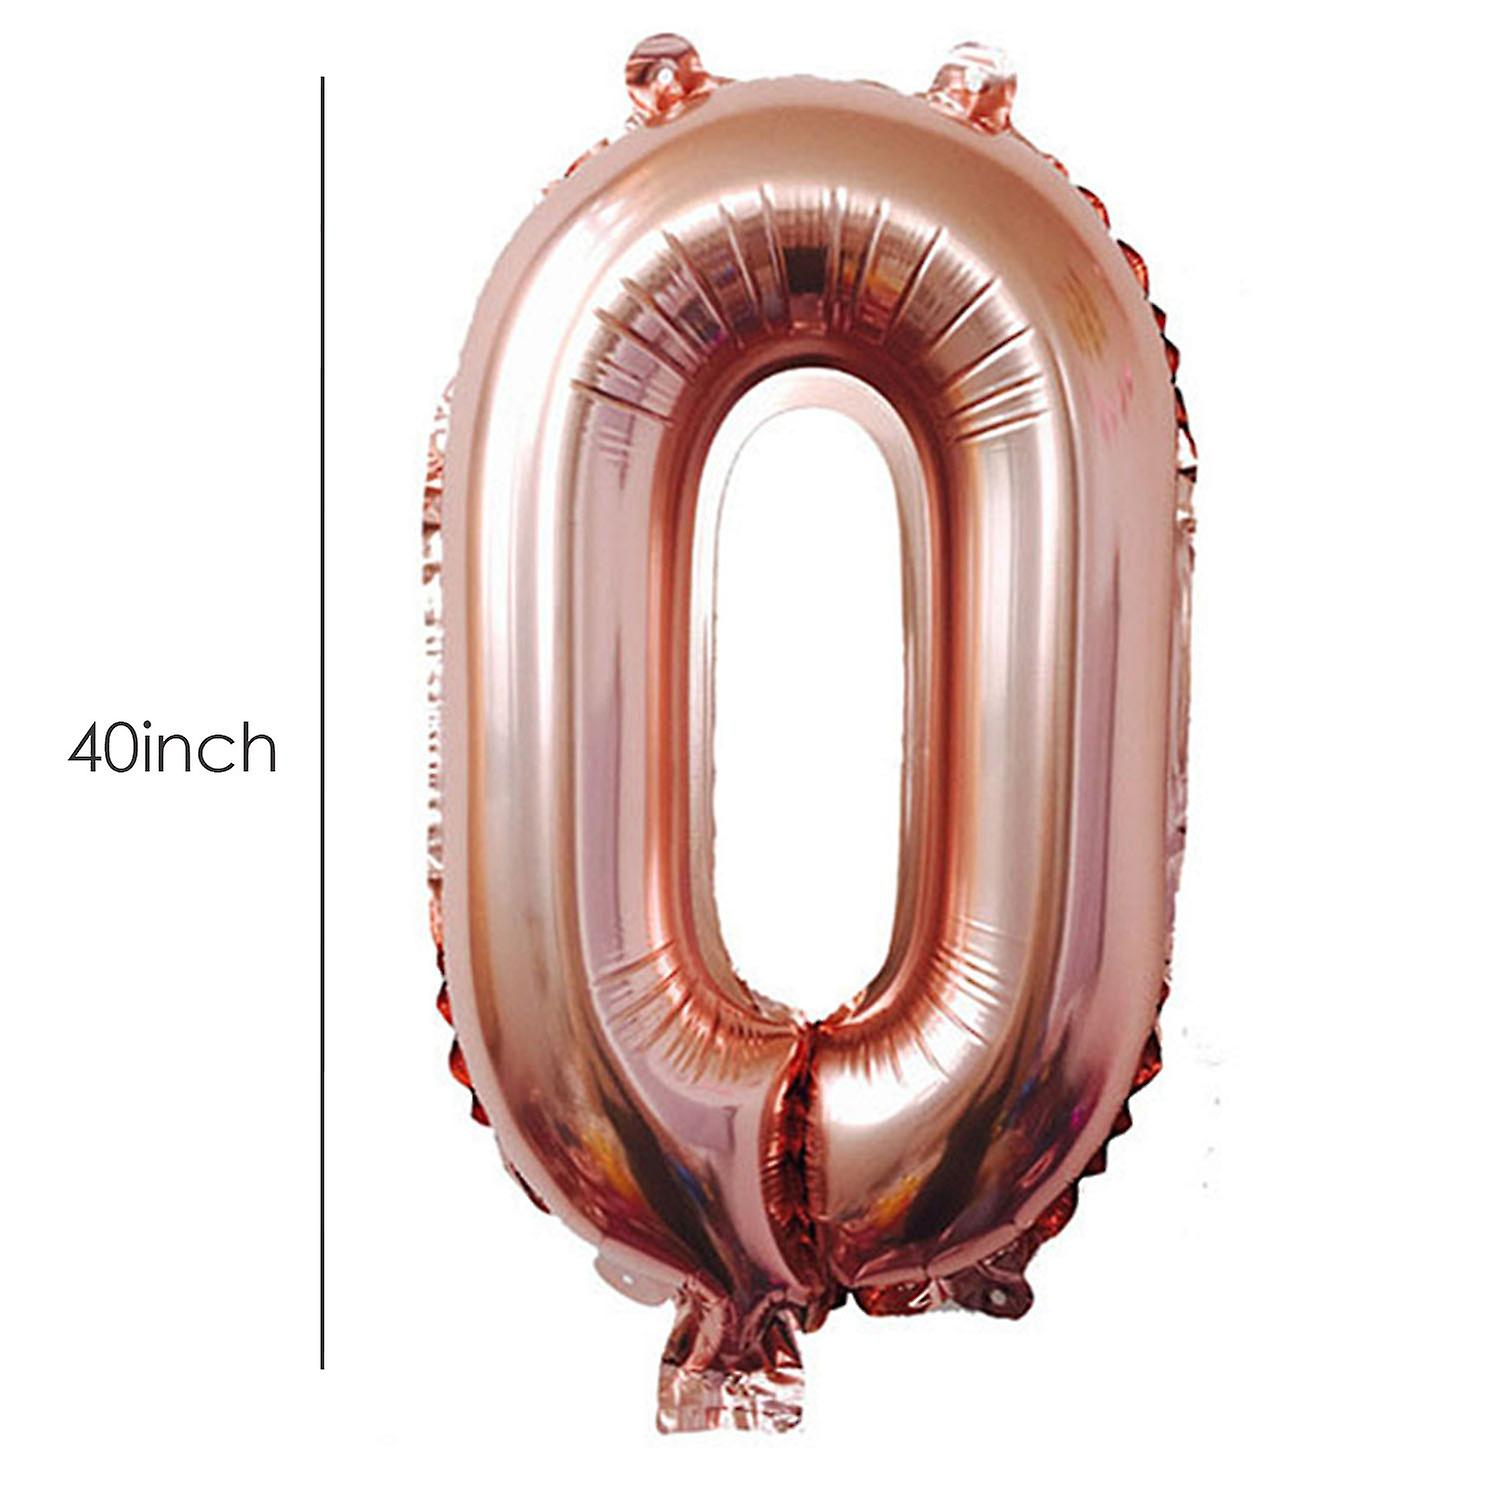 TRIXES Number 30 Foil Balloon For Birthdays Anniversaries  40 Inch Rose Gold